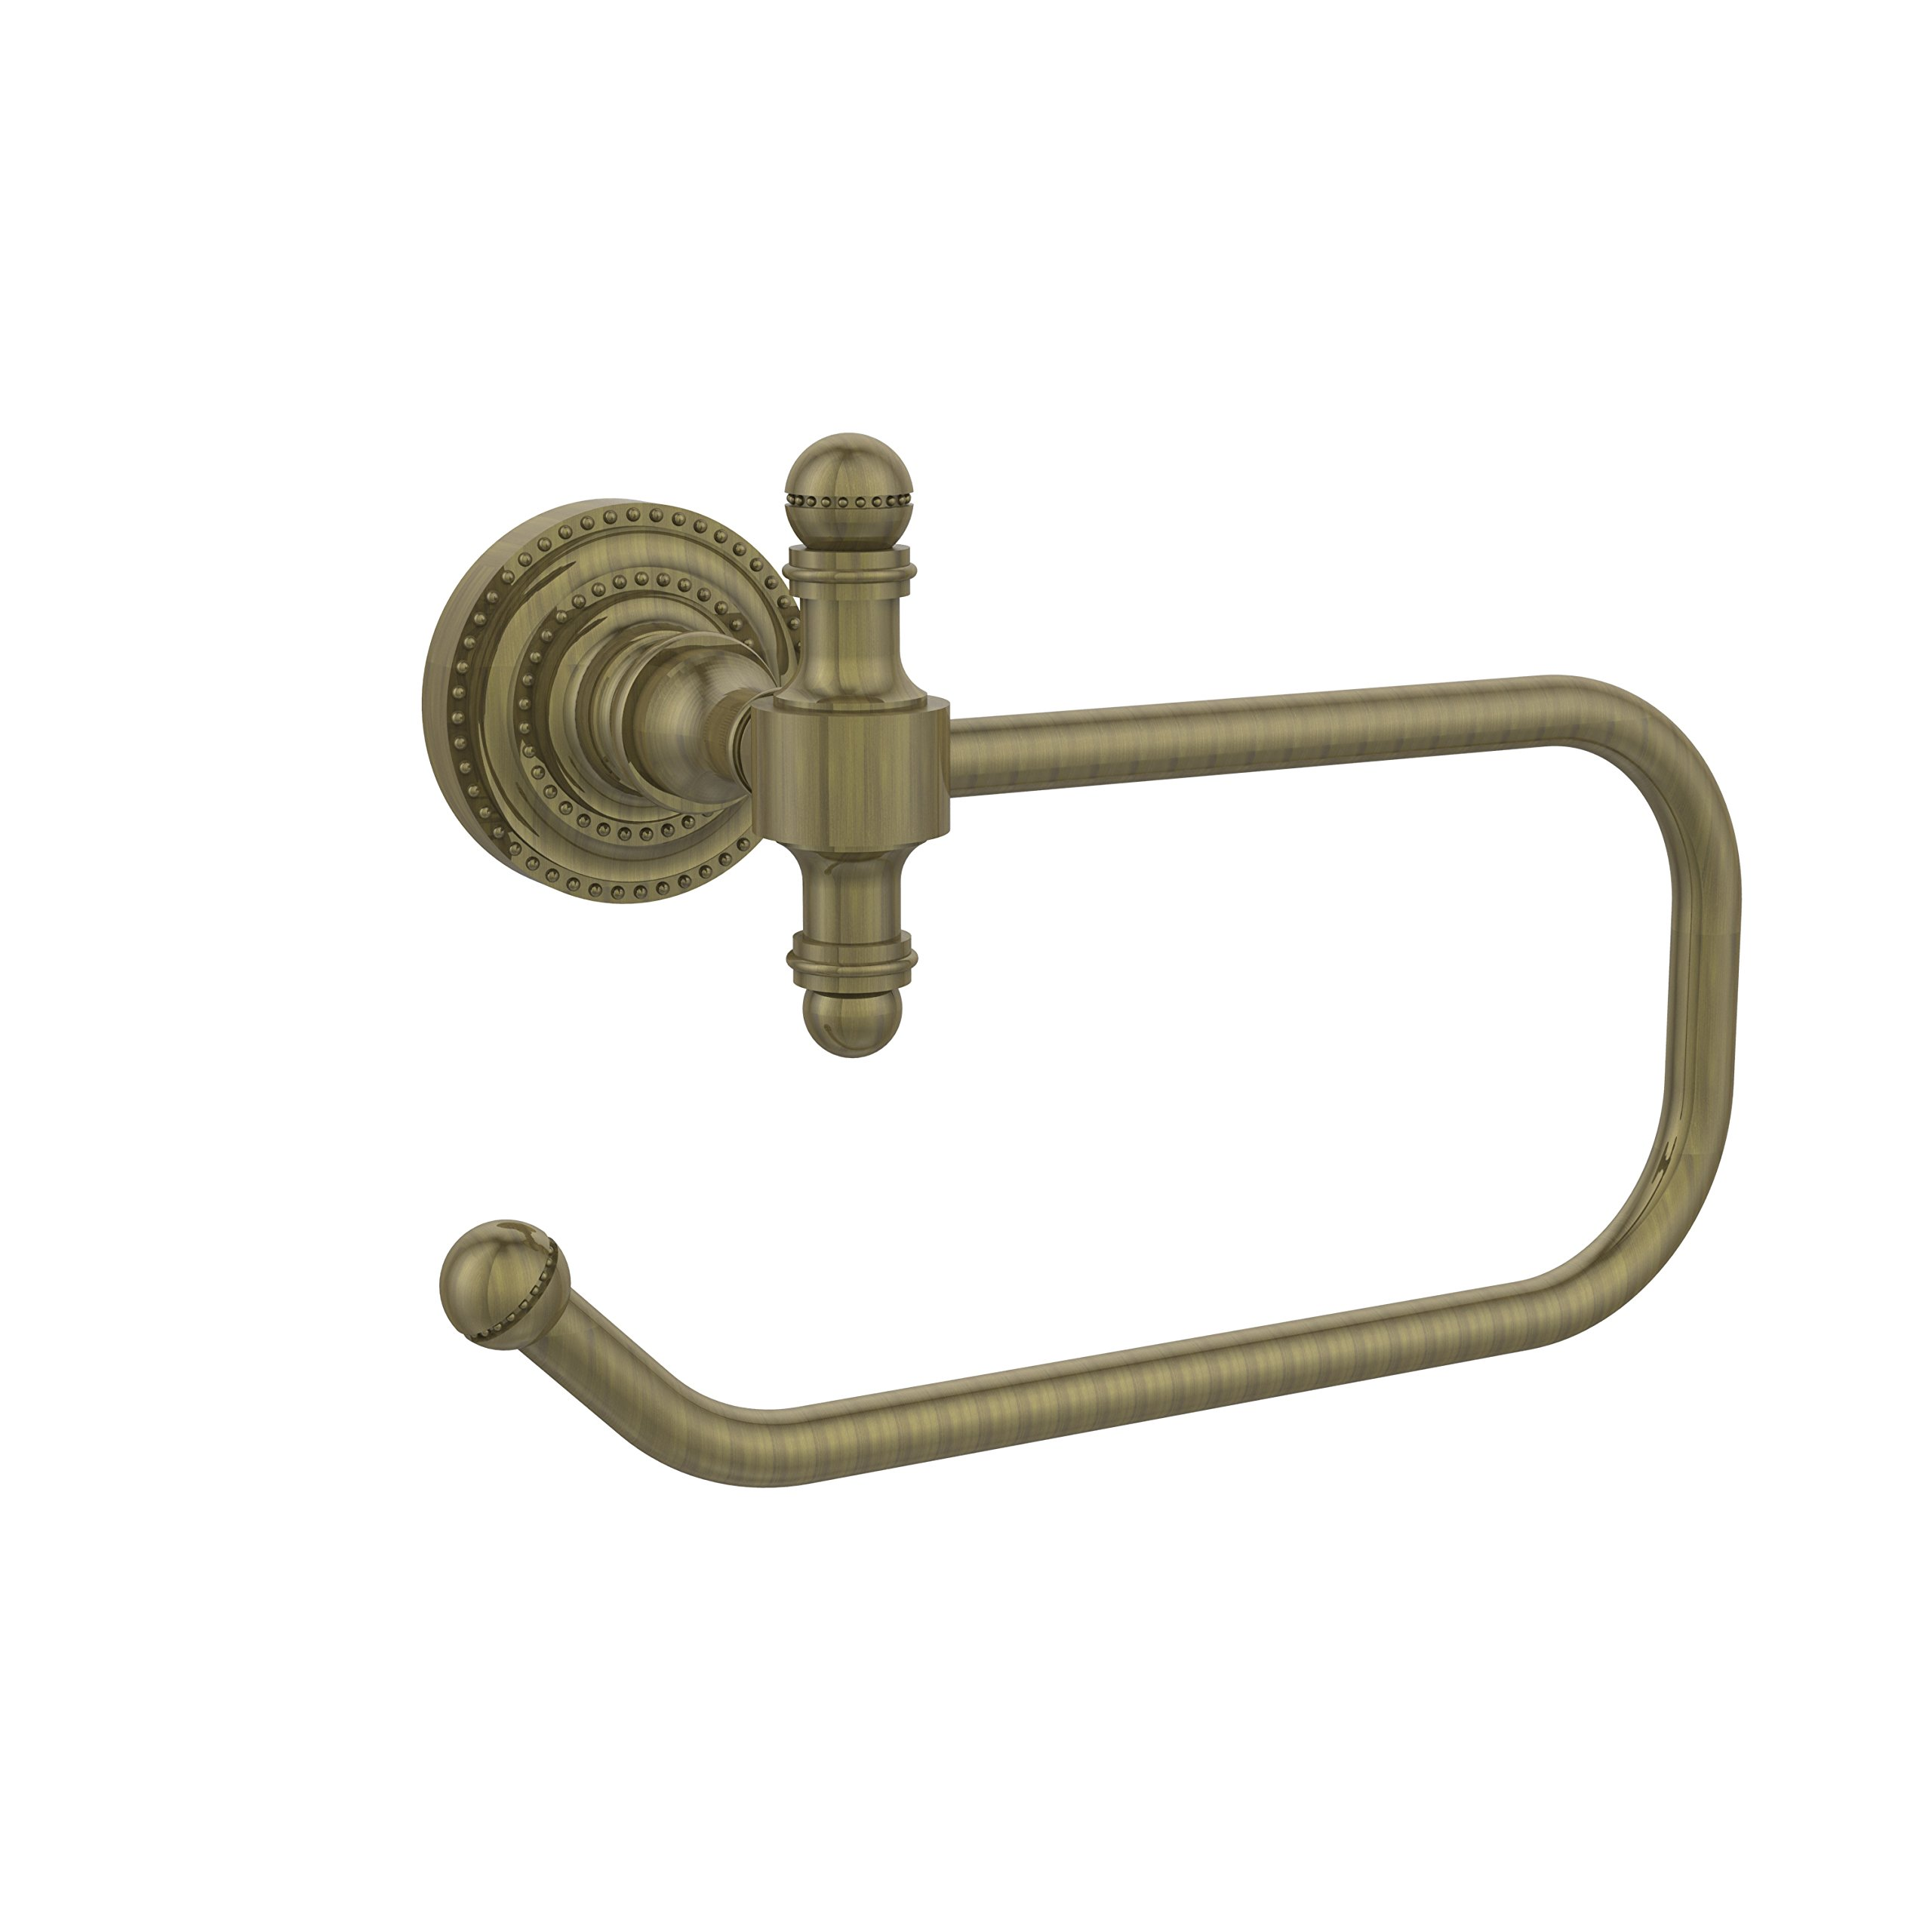 Allied Brass RD-24E-ABR Retro Dot Collection Euro Tissue Holder, Antique Brass